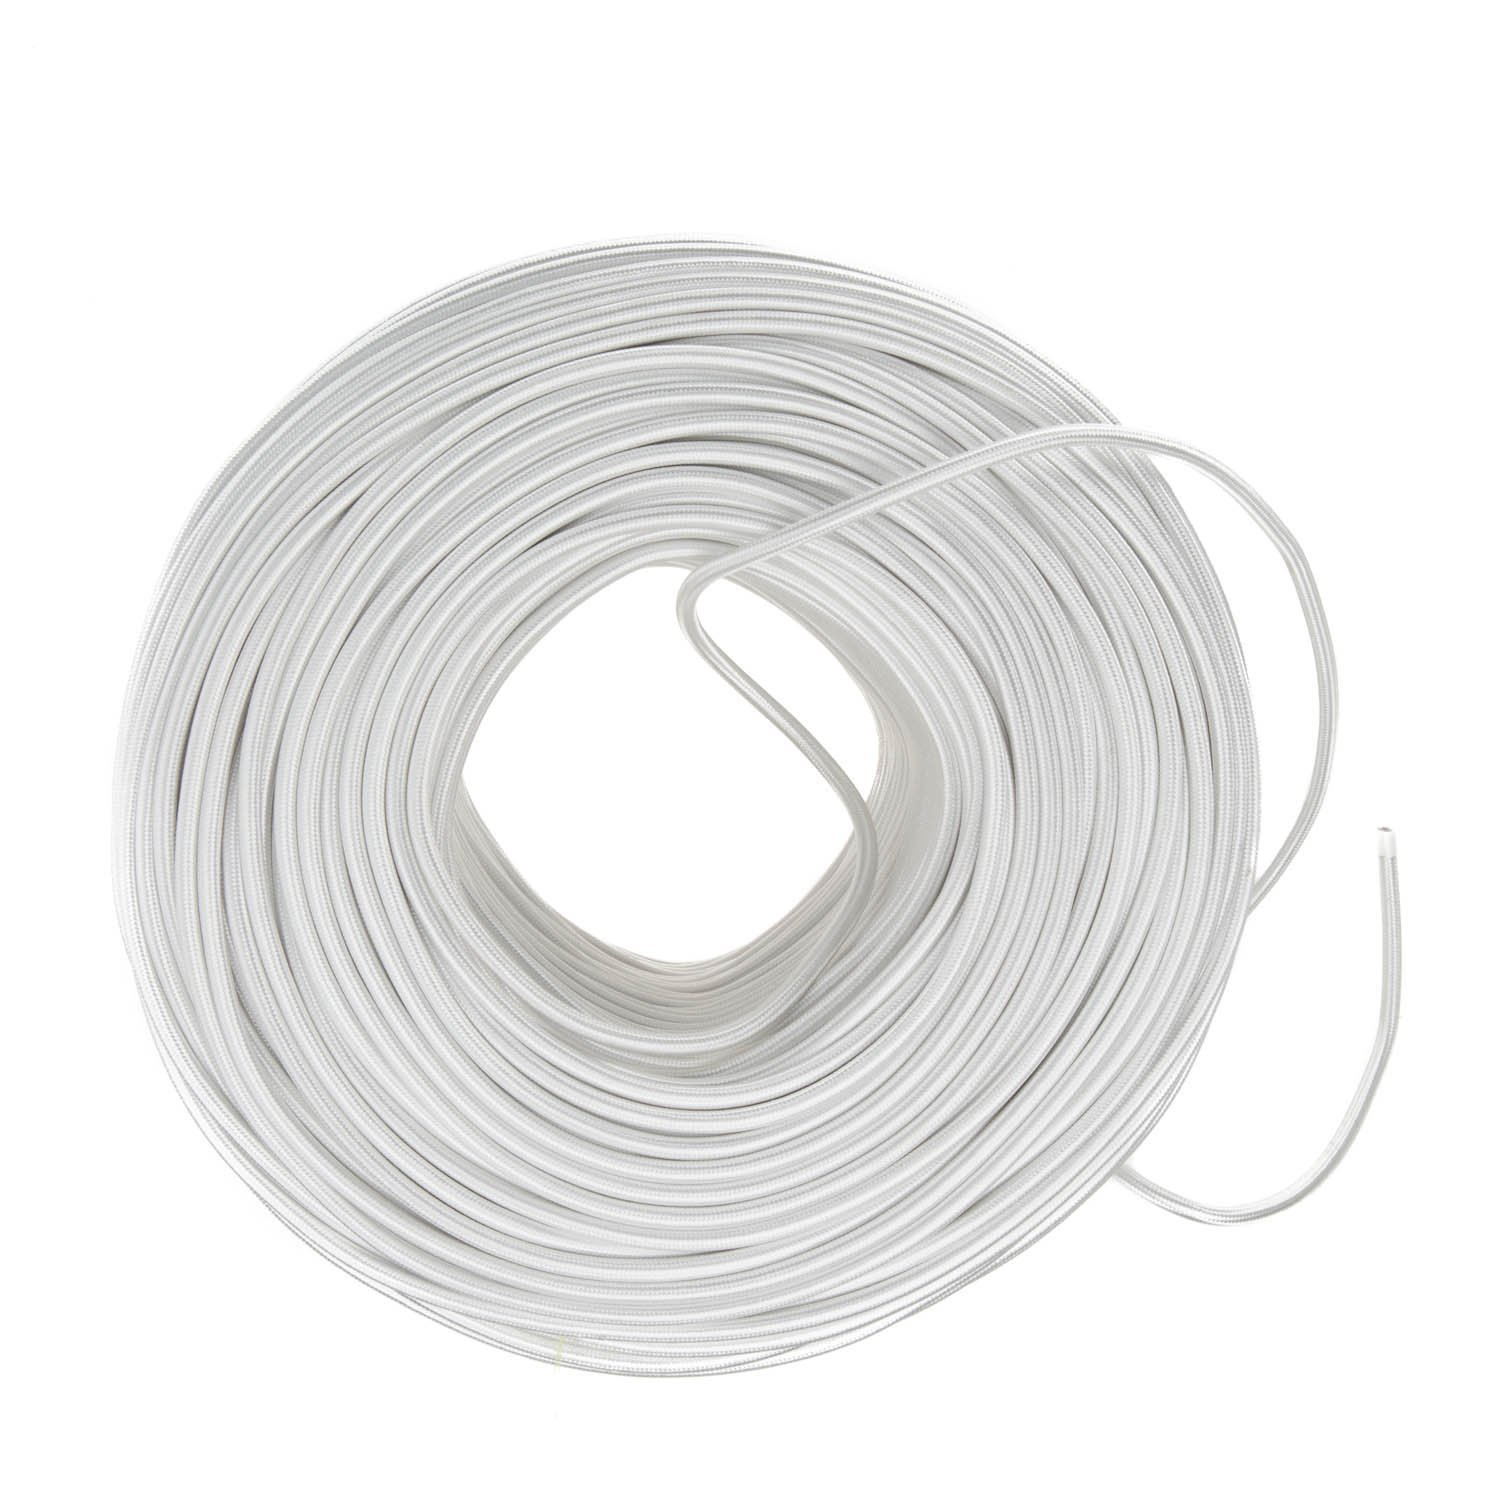 Swell Cloth Electrical Covered Wire Pearl Color Cord Company Wiring Cloud Picalendutblikvittorg